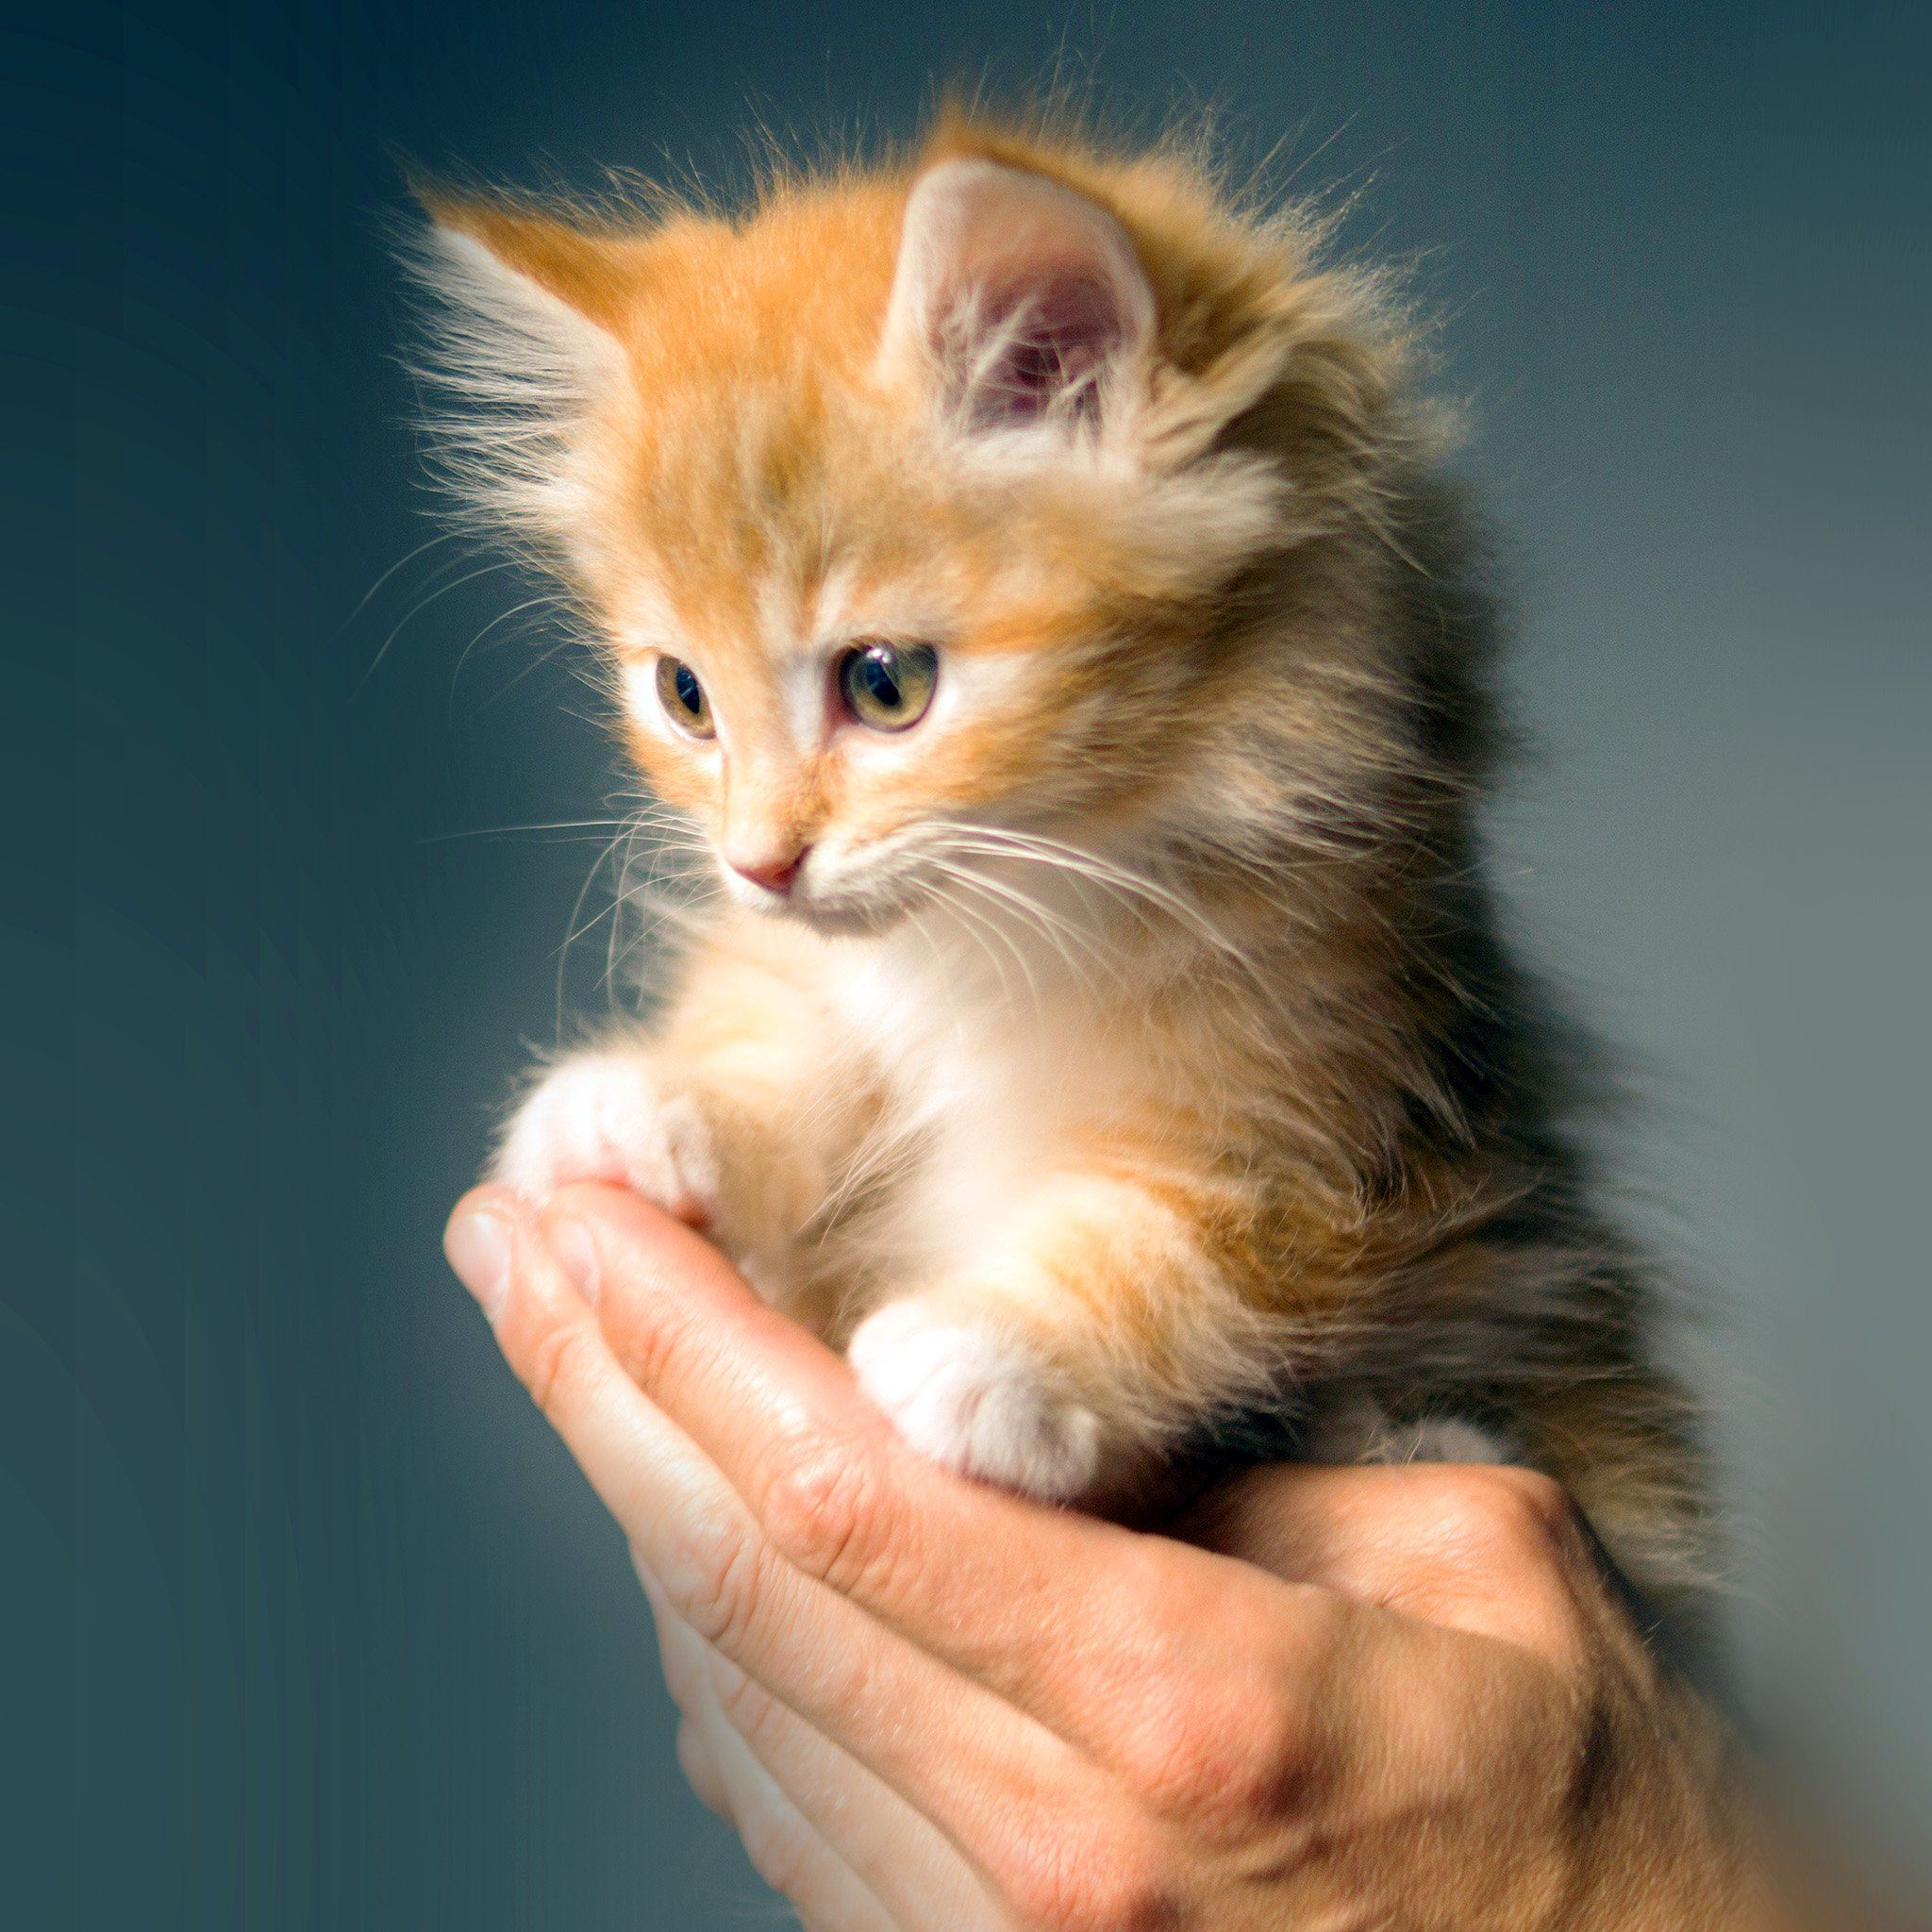 animal cute kitten cat nature ipad air wallpaper download | iphone